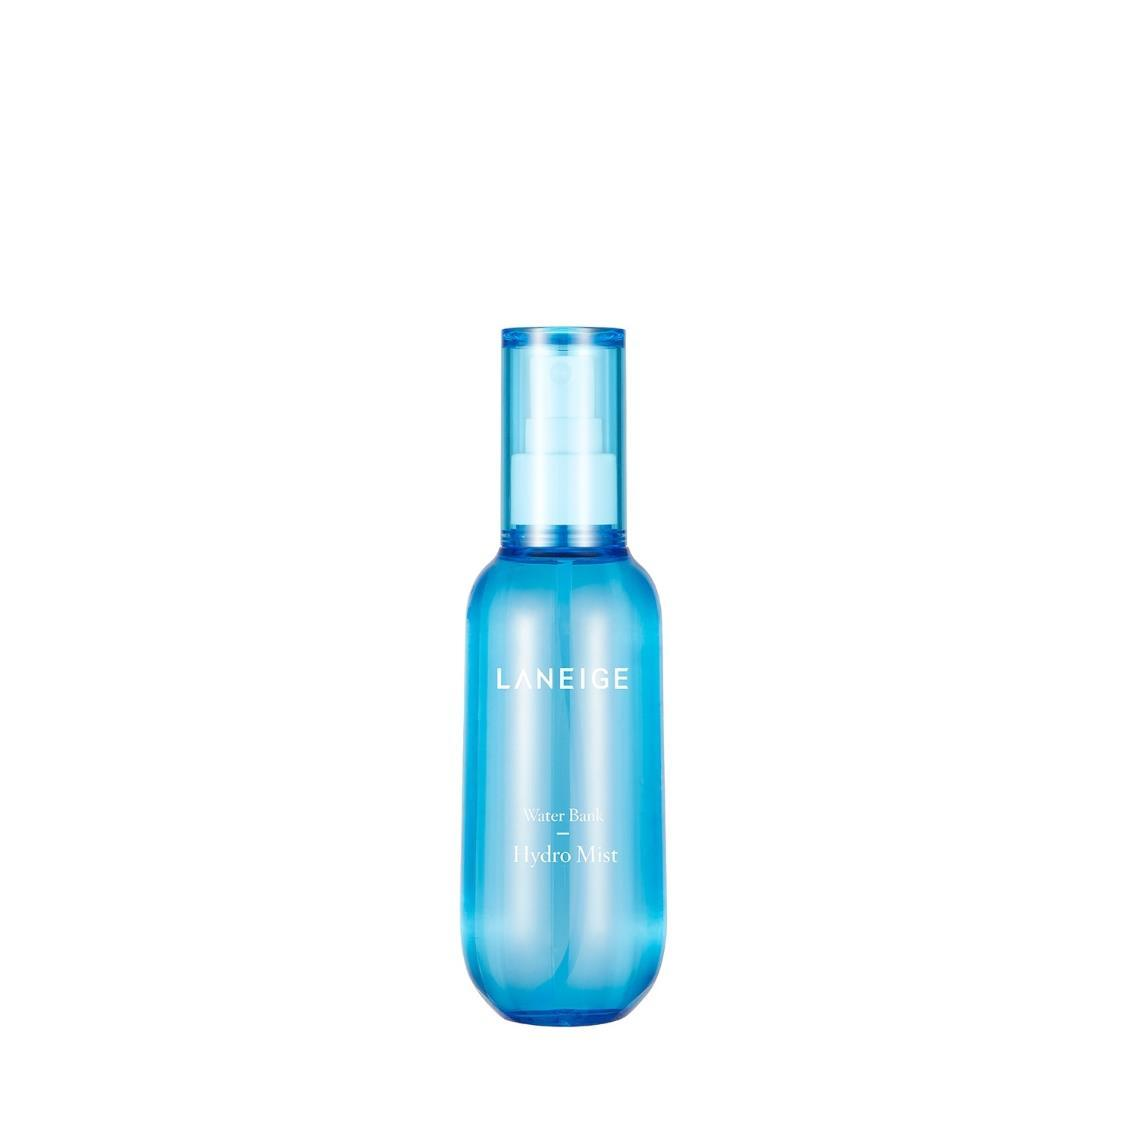 Water Bank Hydro Mist 150ml